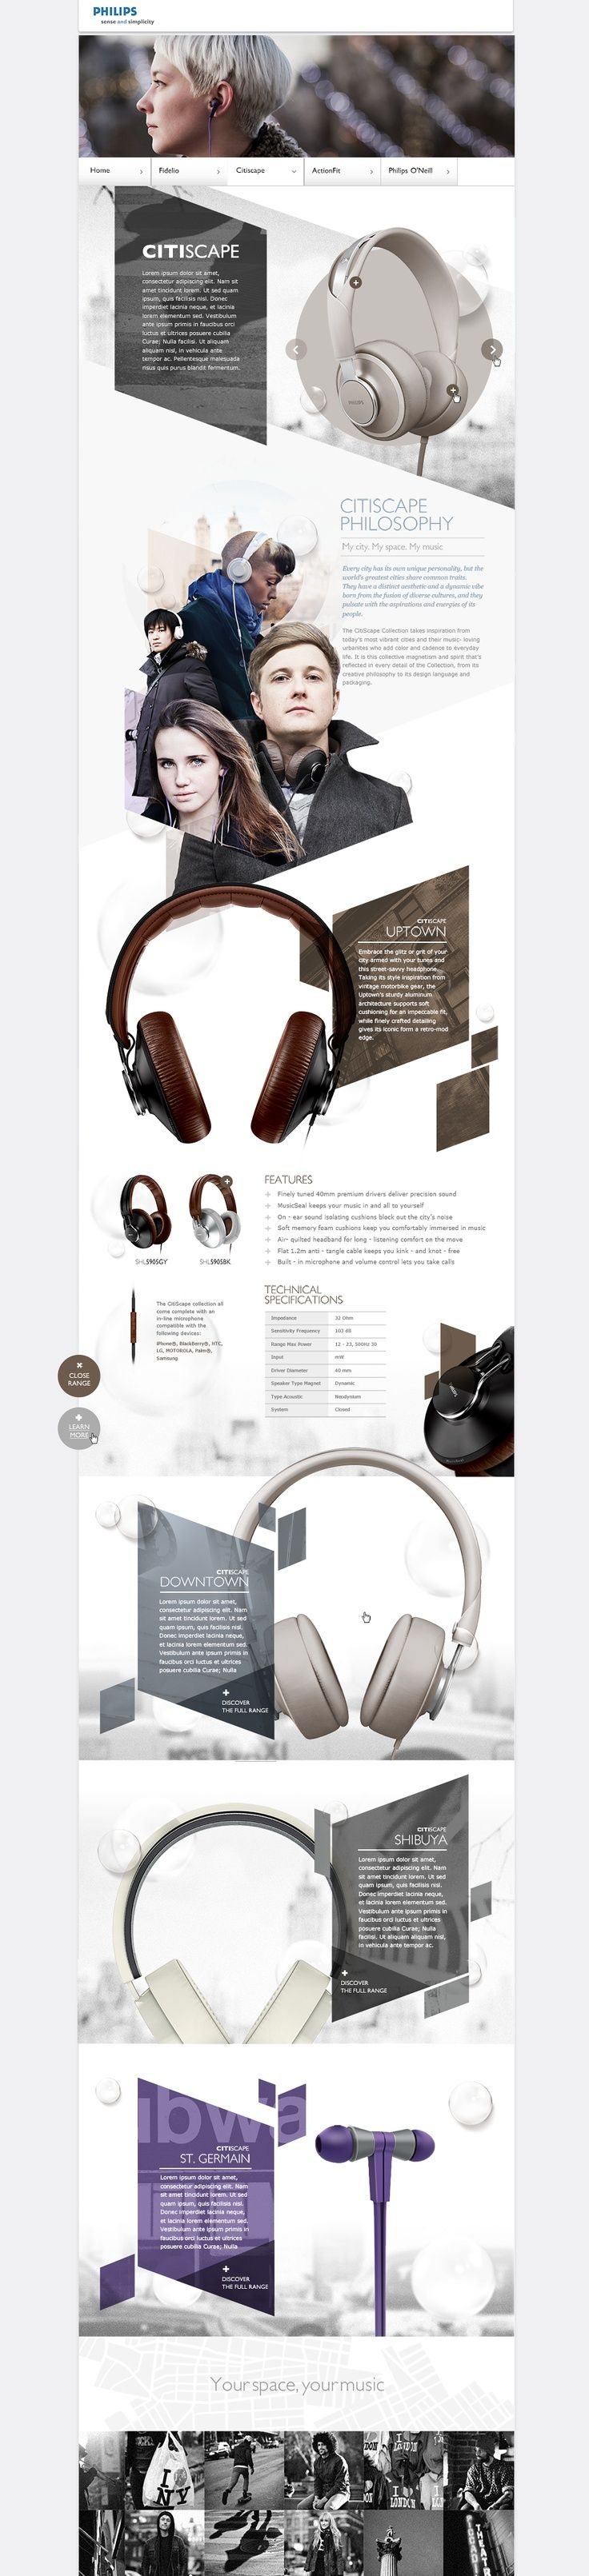 Headset website